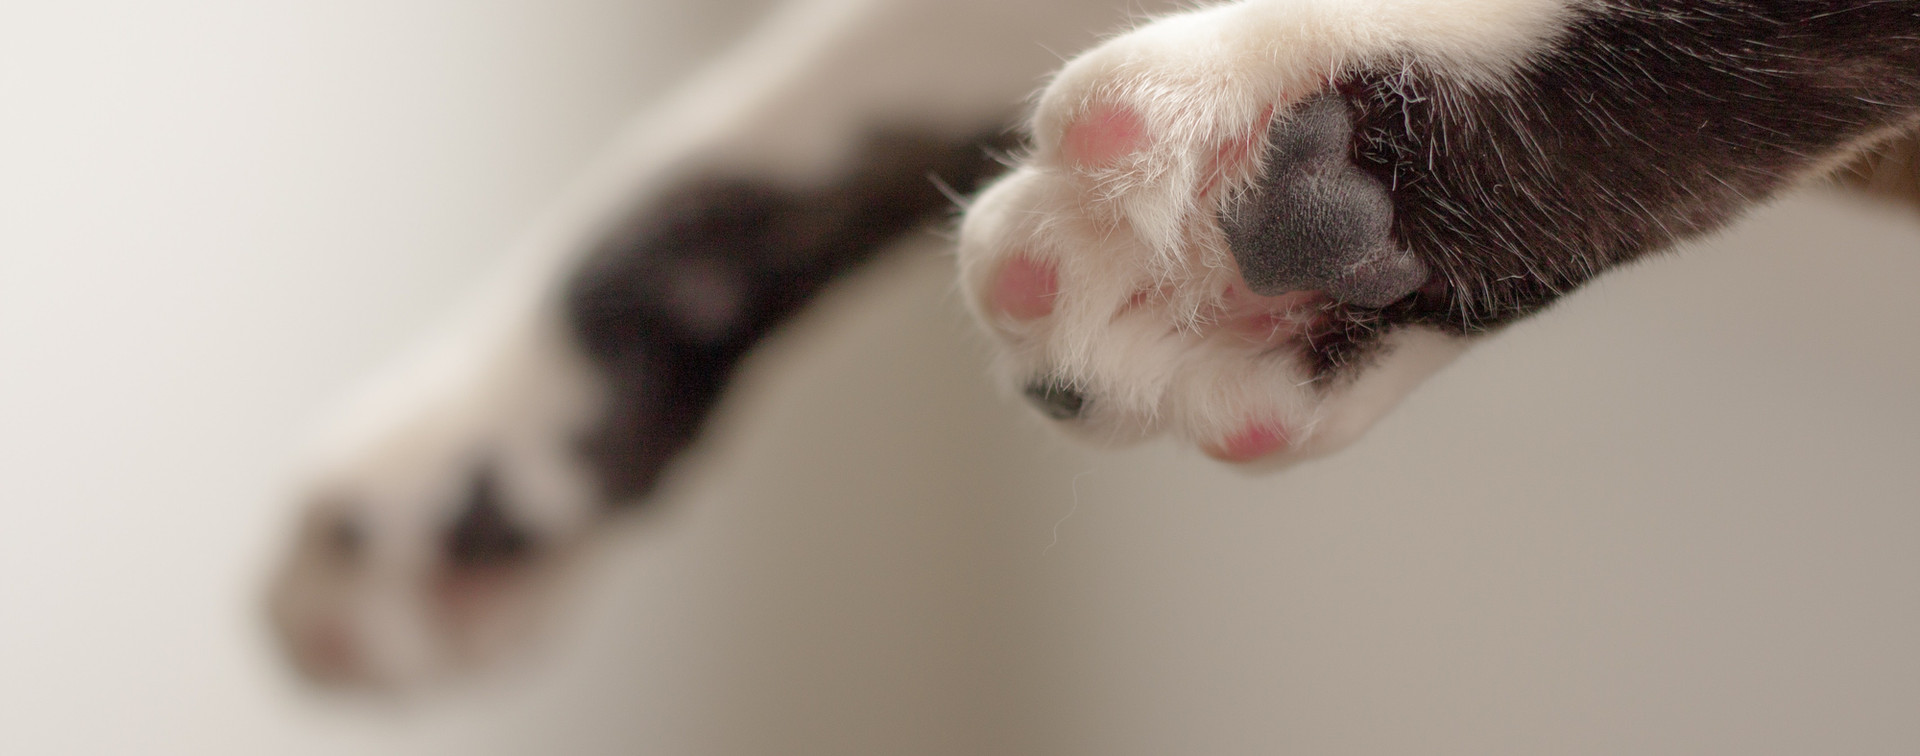 cat-paws-in-shallow-focus-photography-90